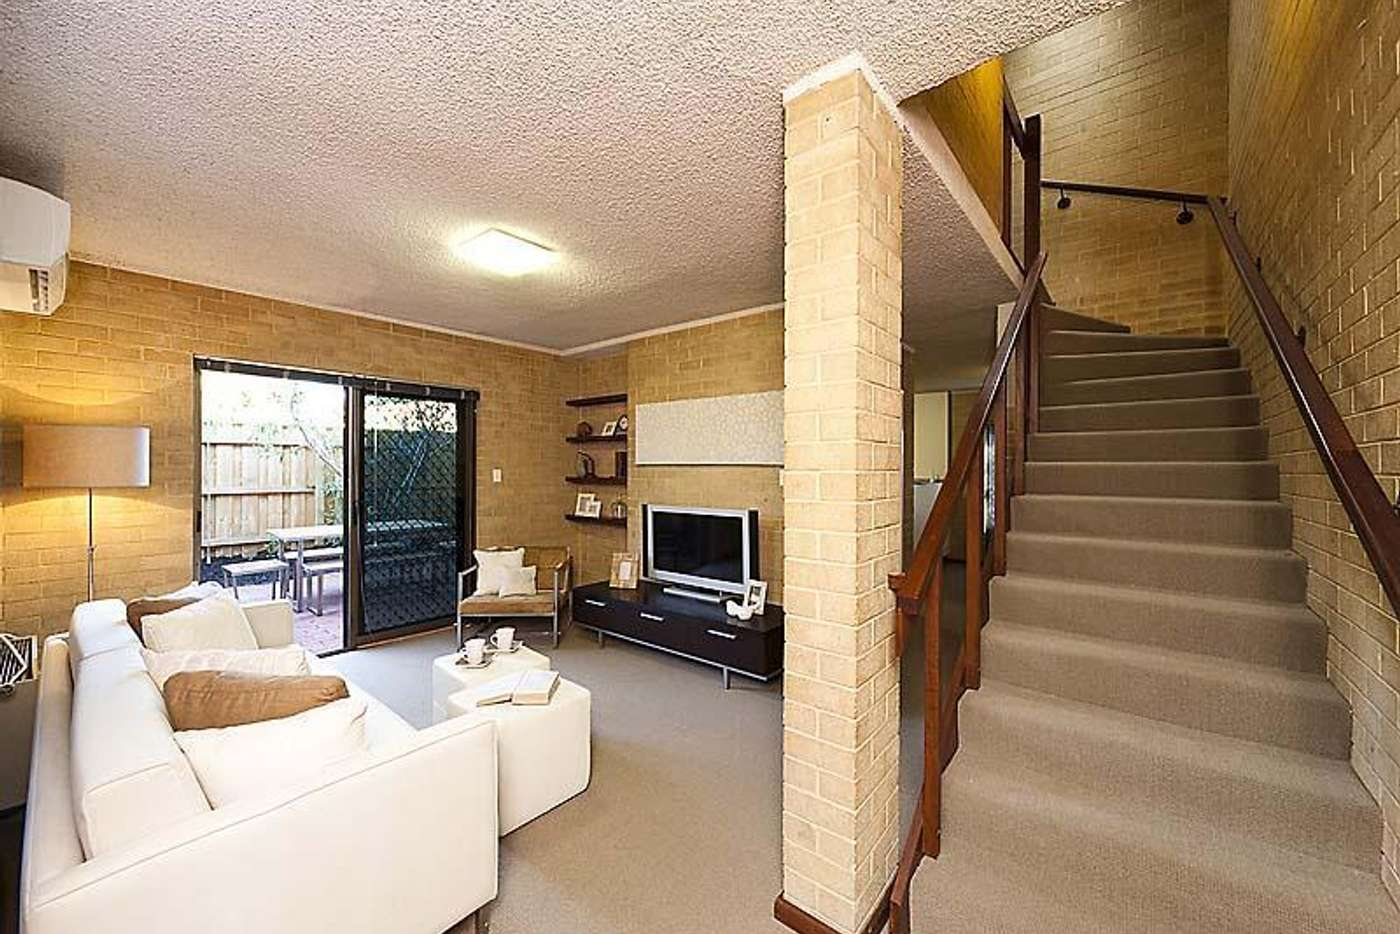 Sixth view of Homely townhouse listing, 6/14 Park Road, Crawley WA 6009